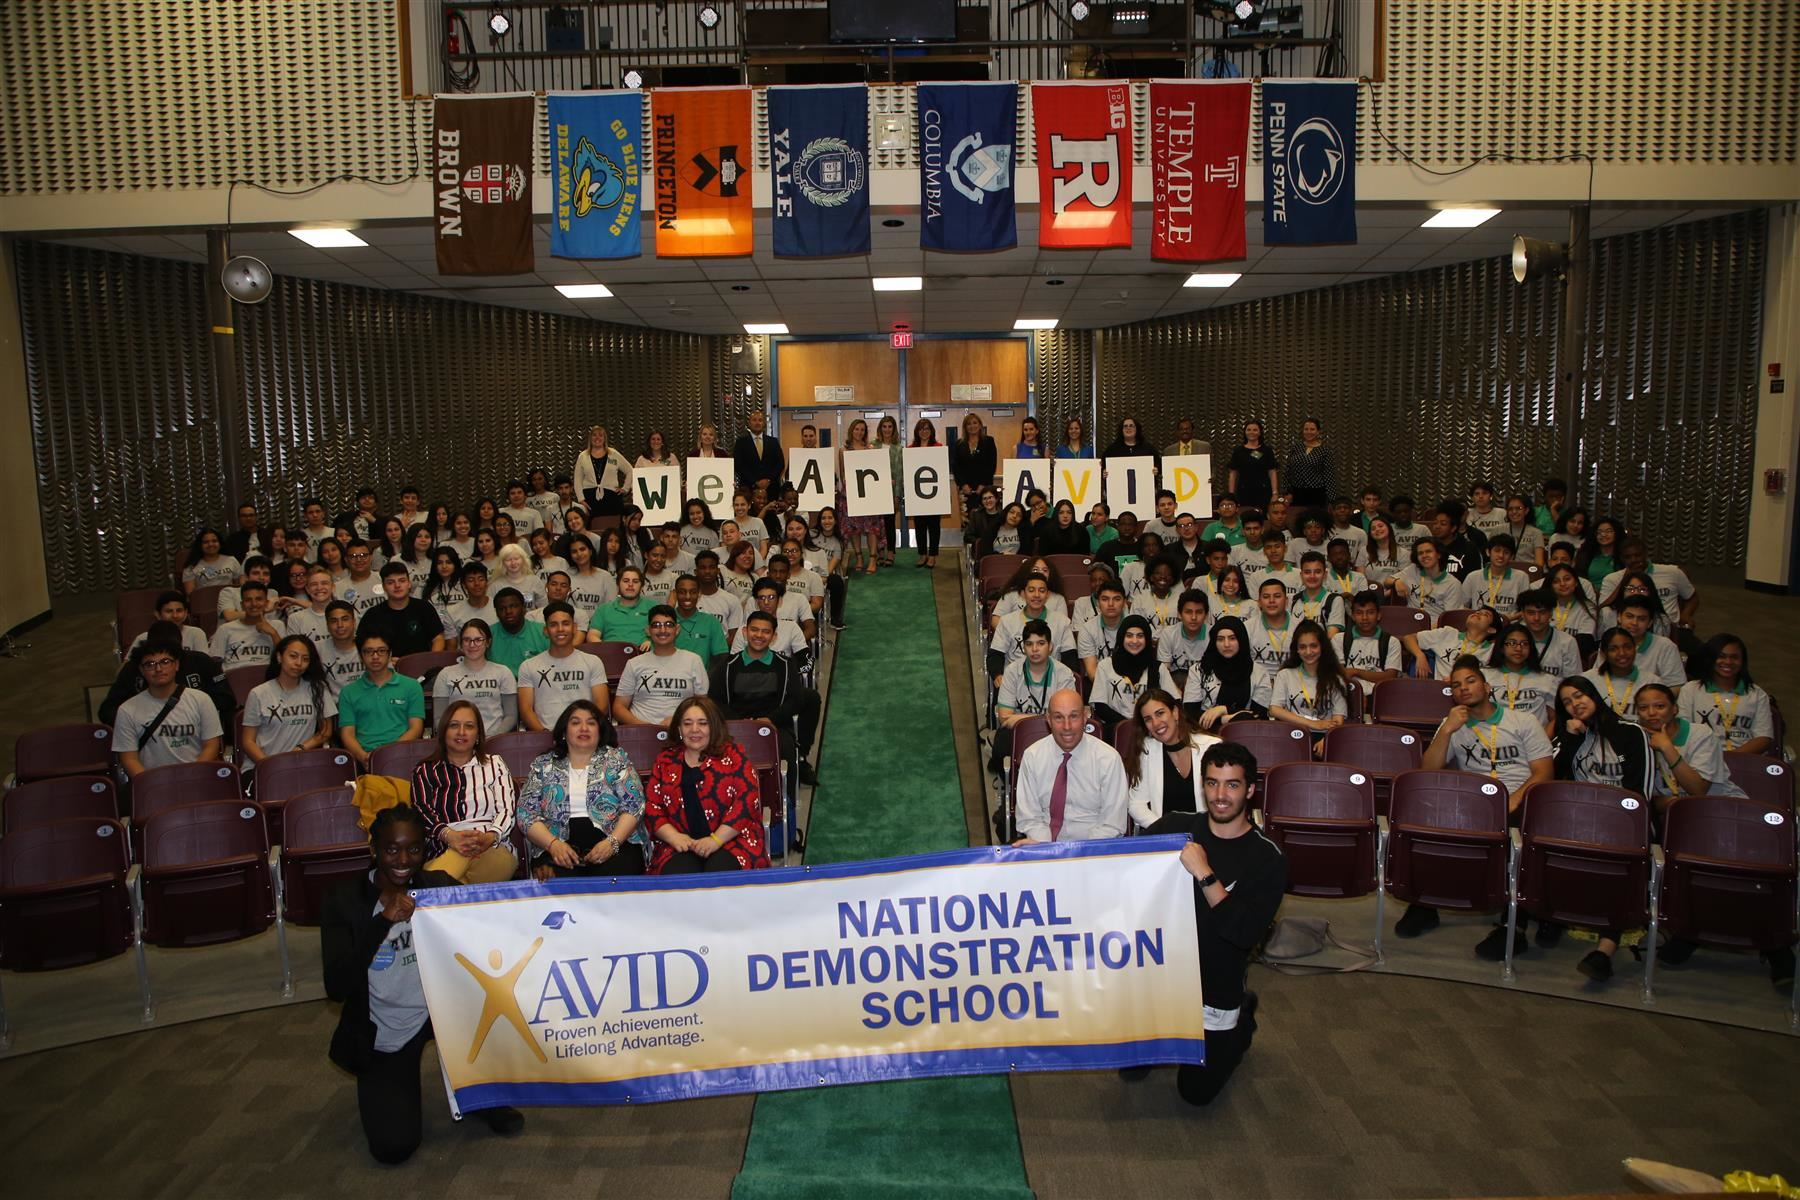 Dwyer Technology Academy was certified as the First National AVID Demonstration High School in Elizabeth